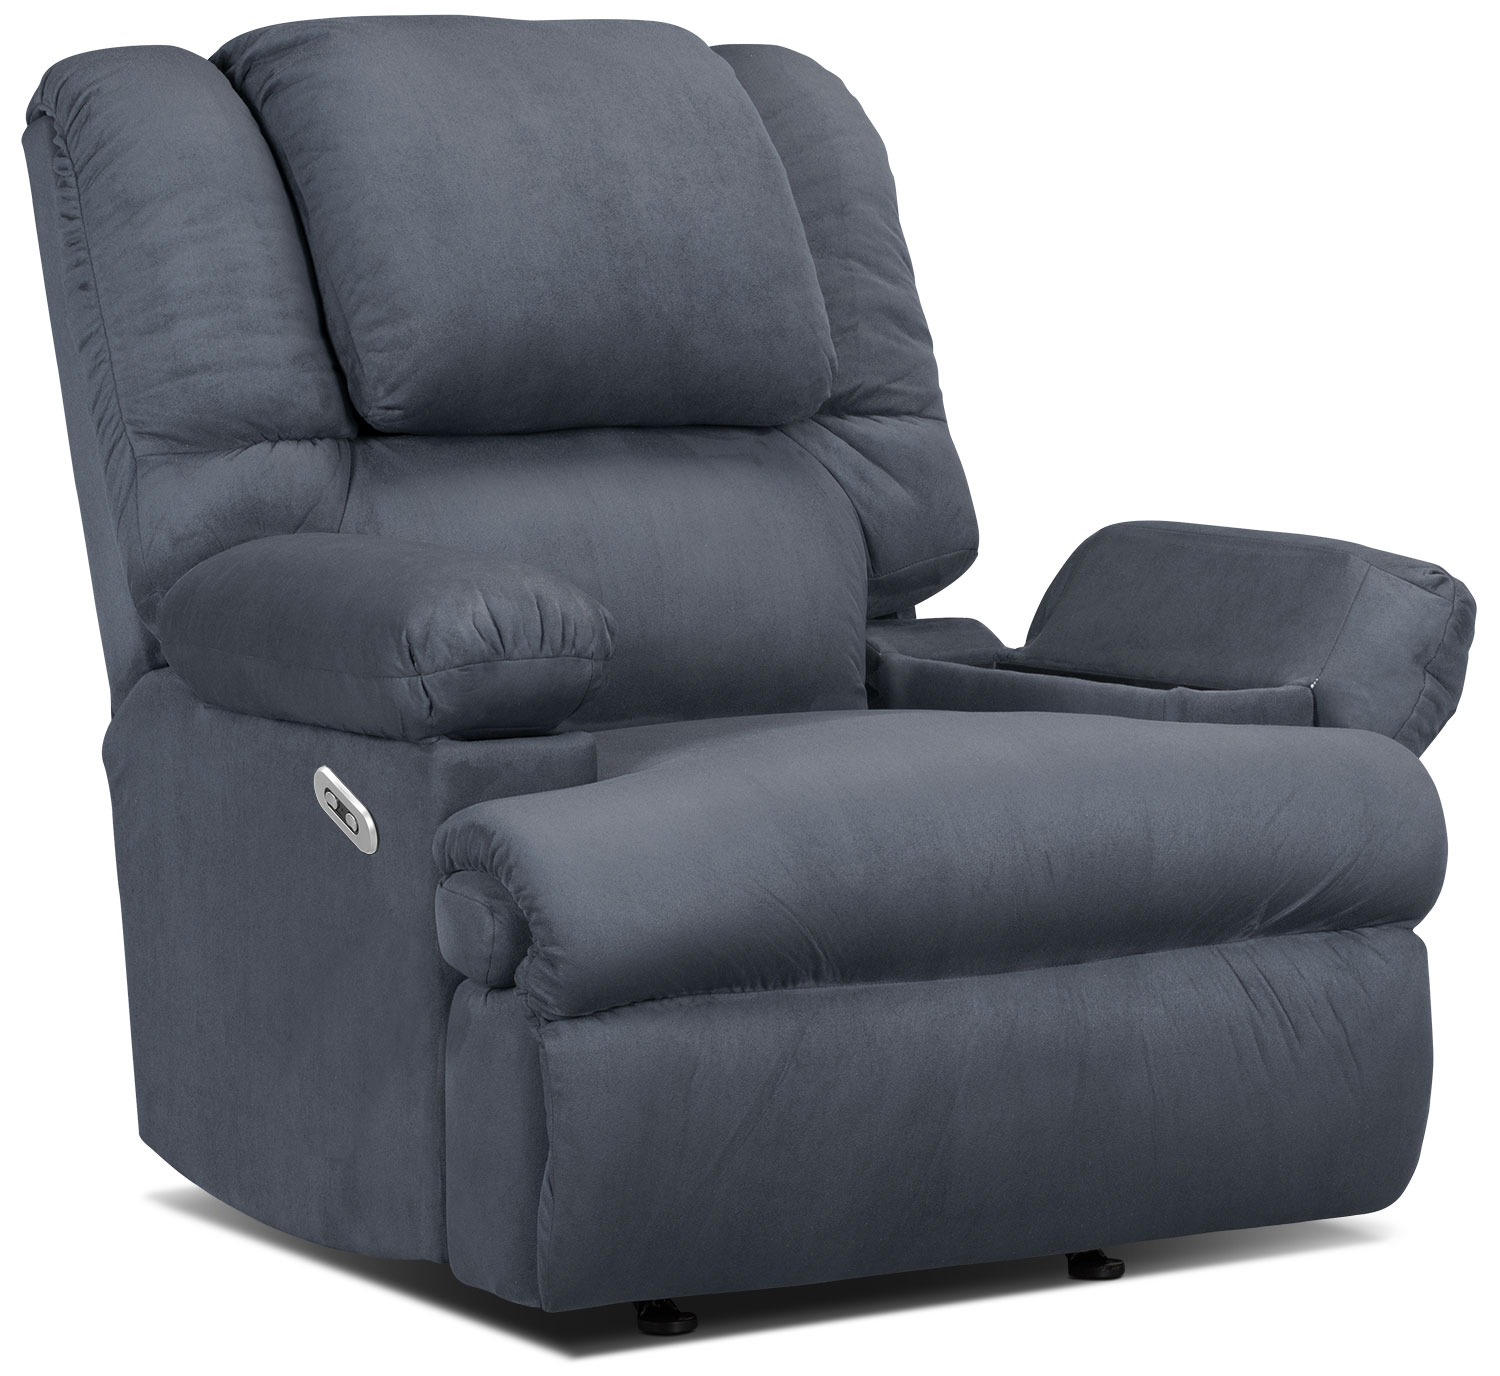 Designed2B Recliner 5598 Padded Suede Power Recliner with Massage and Storage Arms - Navy